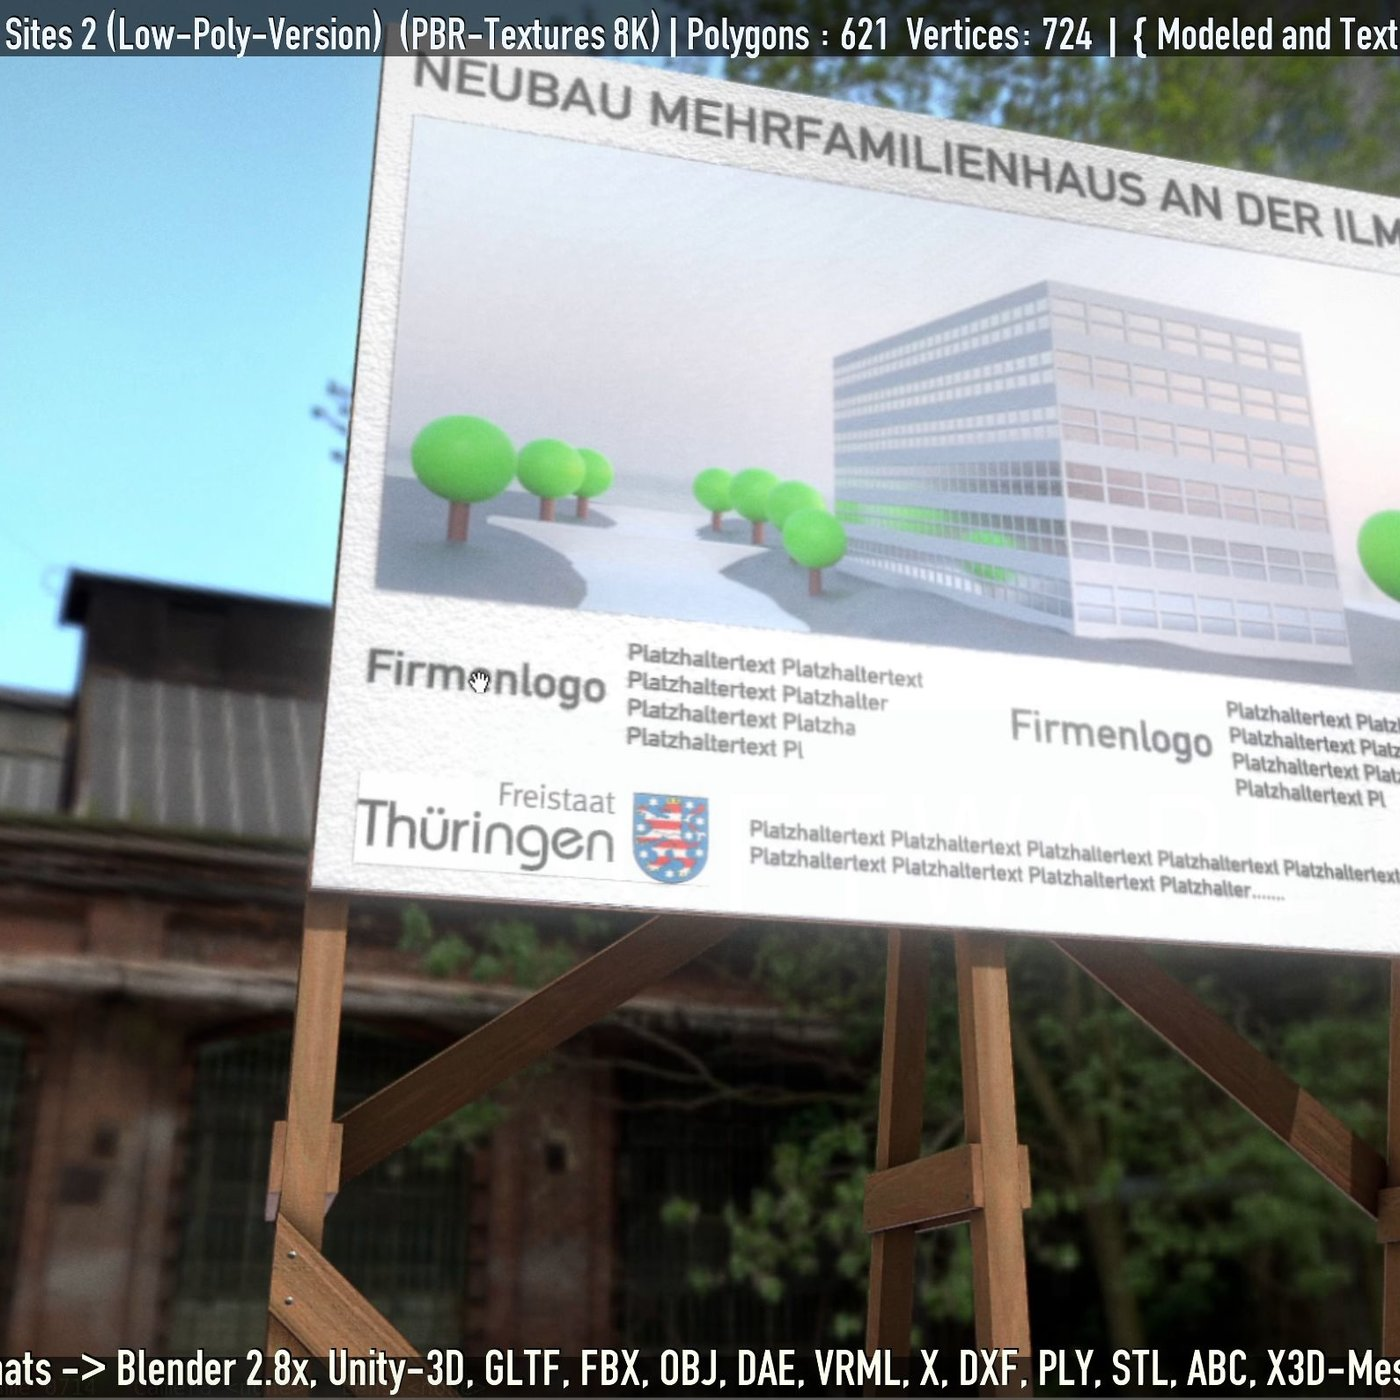 Low-Poly Billboard For Construction Sites 2